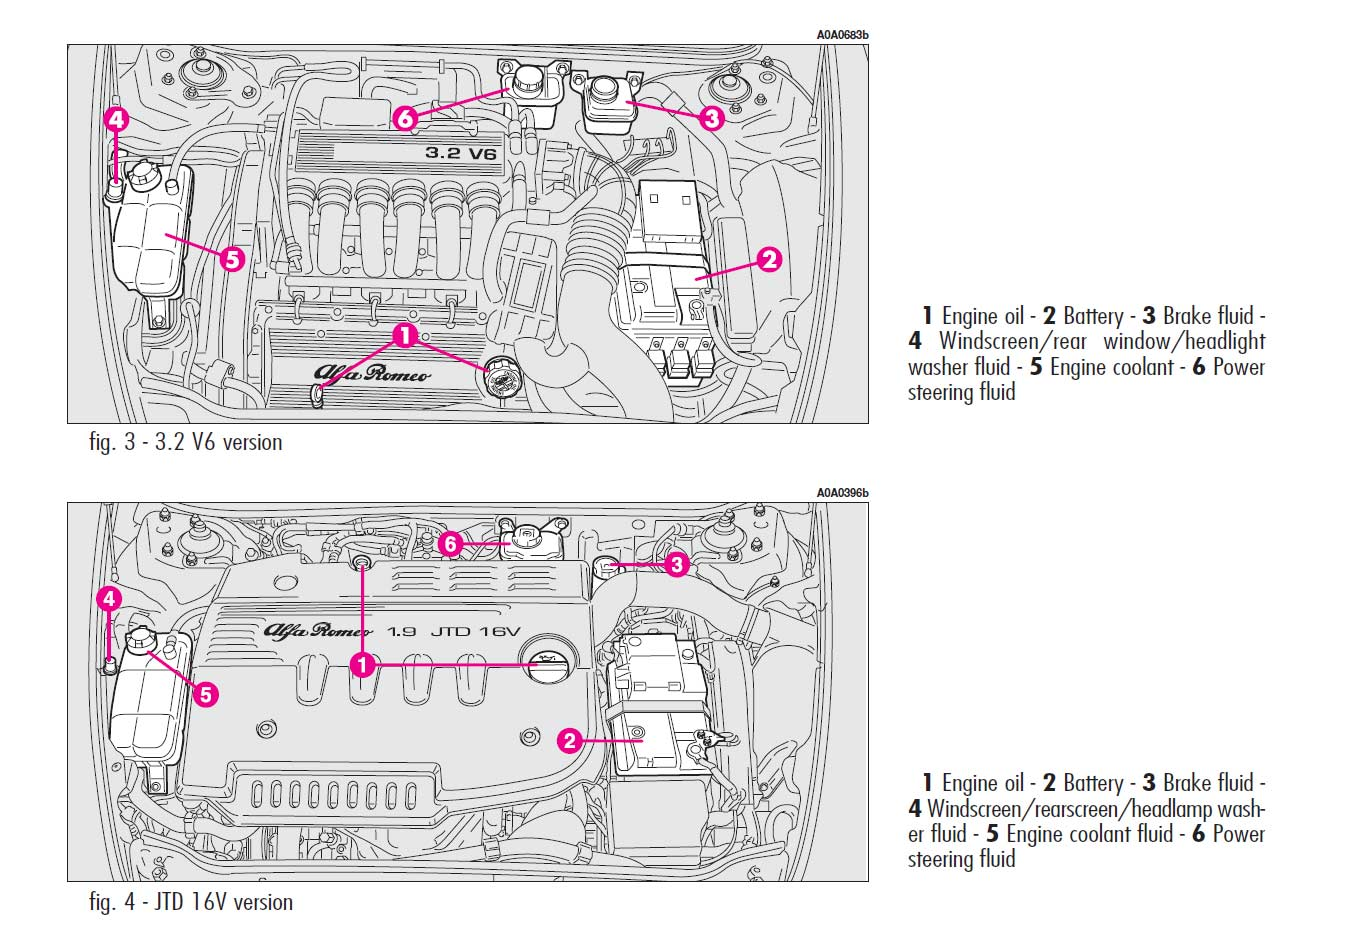 Alfa Romeo 145 Fuse Box Diagram All Kind Of Wiring Diagrams Giulietta Custom Gt 30 Images Mifinder Co 19 Tdi 147